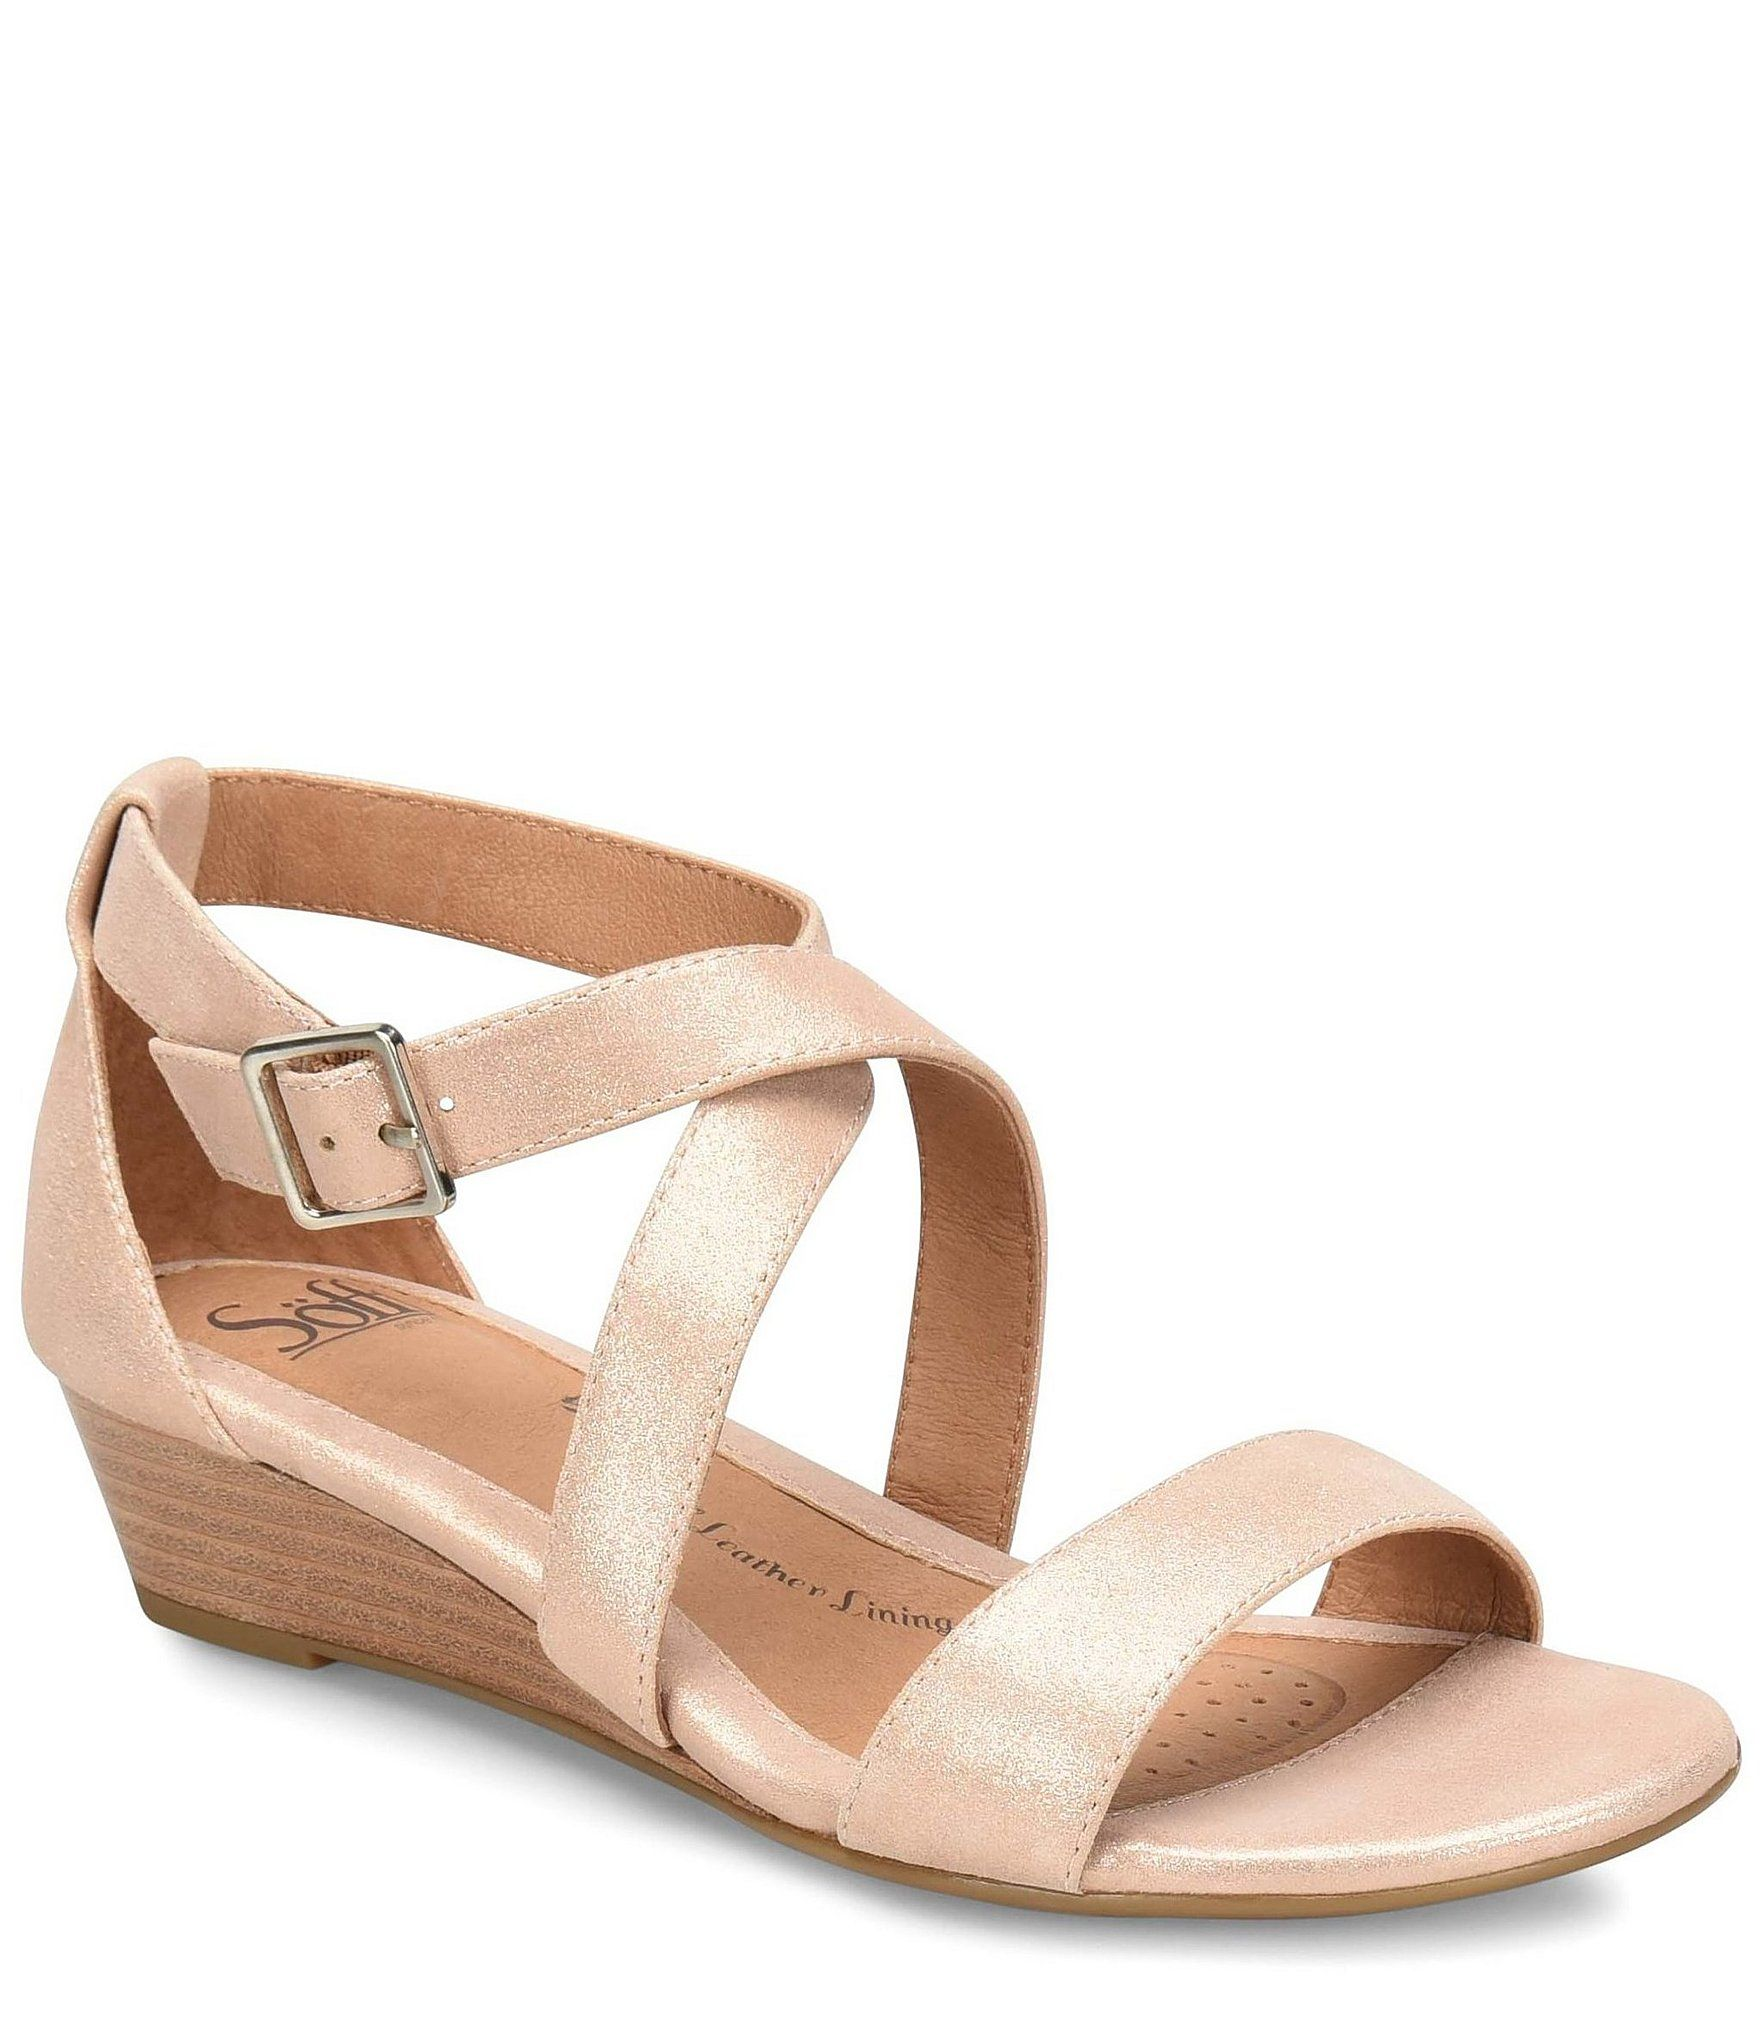 Sofft Innis Metallic Leather Criss Cross Wedge Sandal Rose